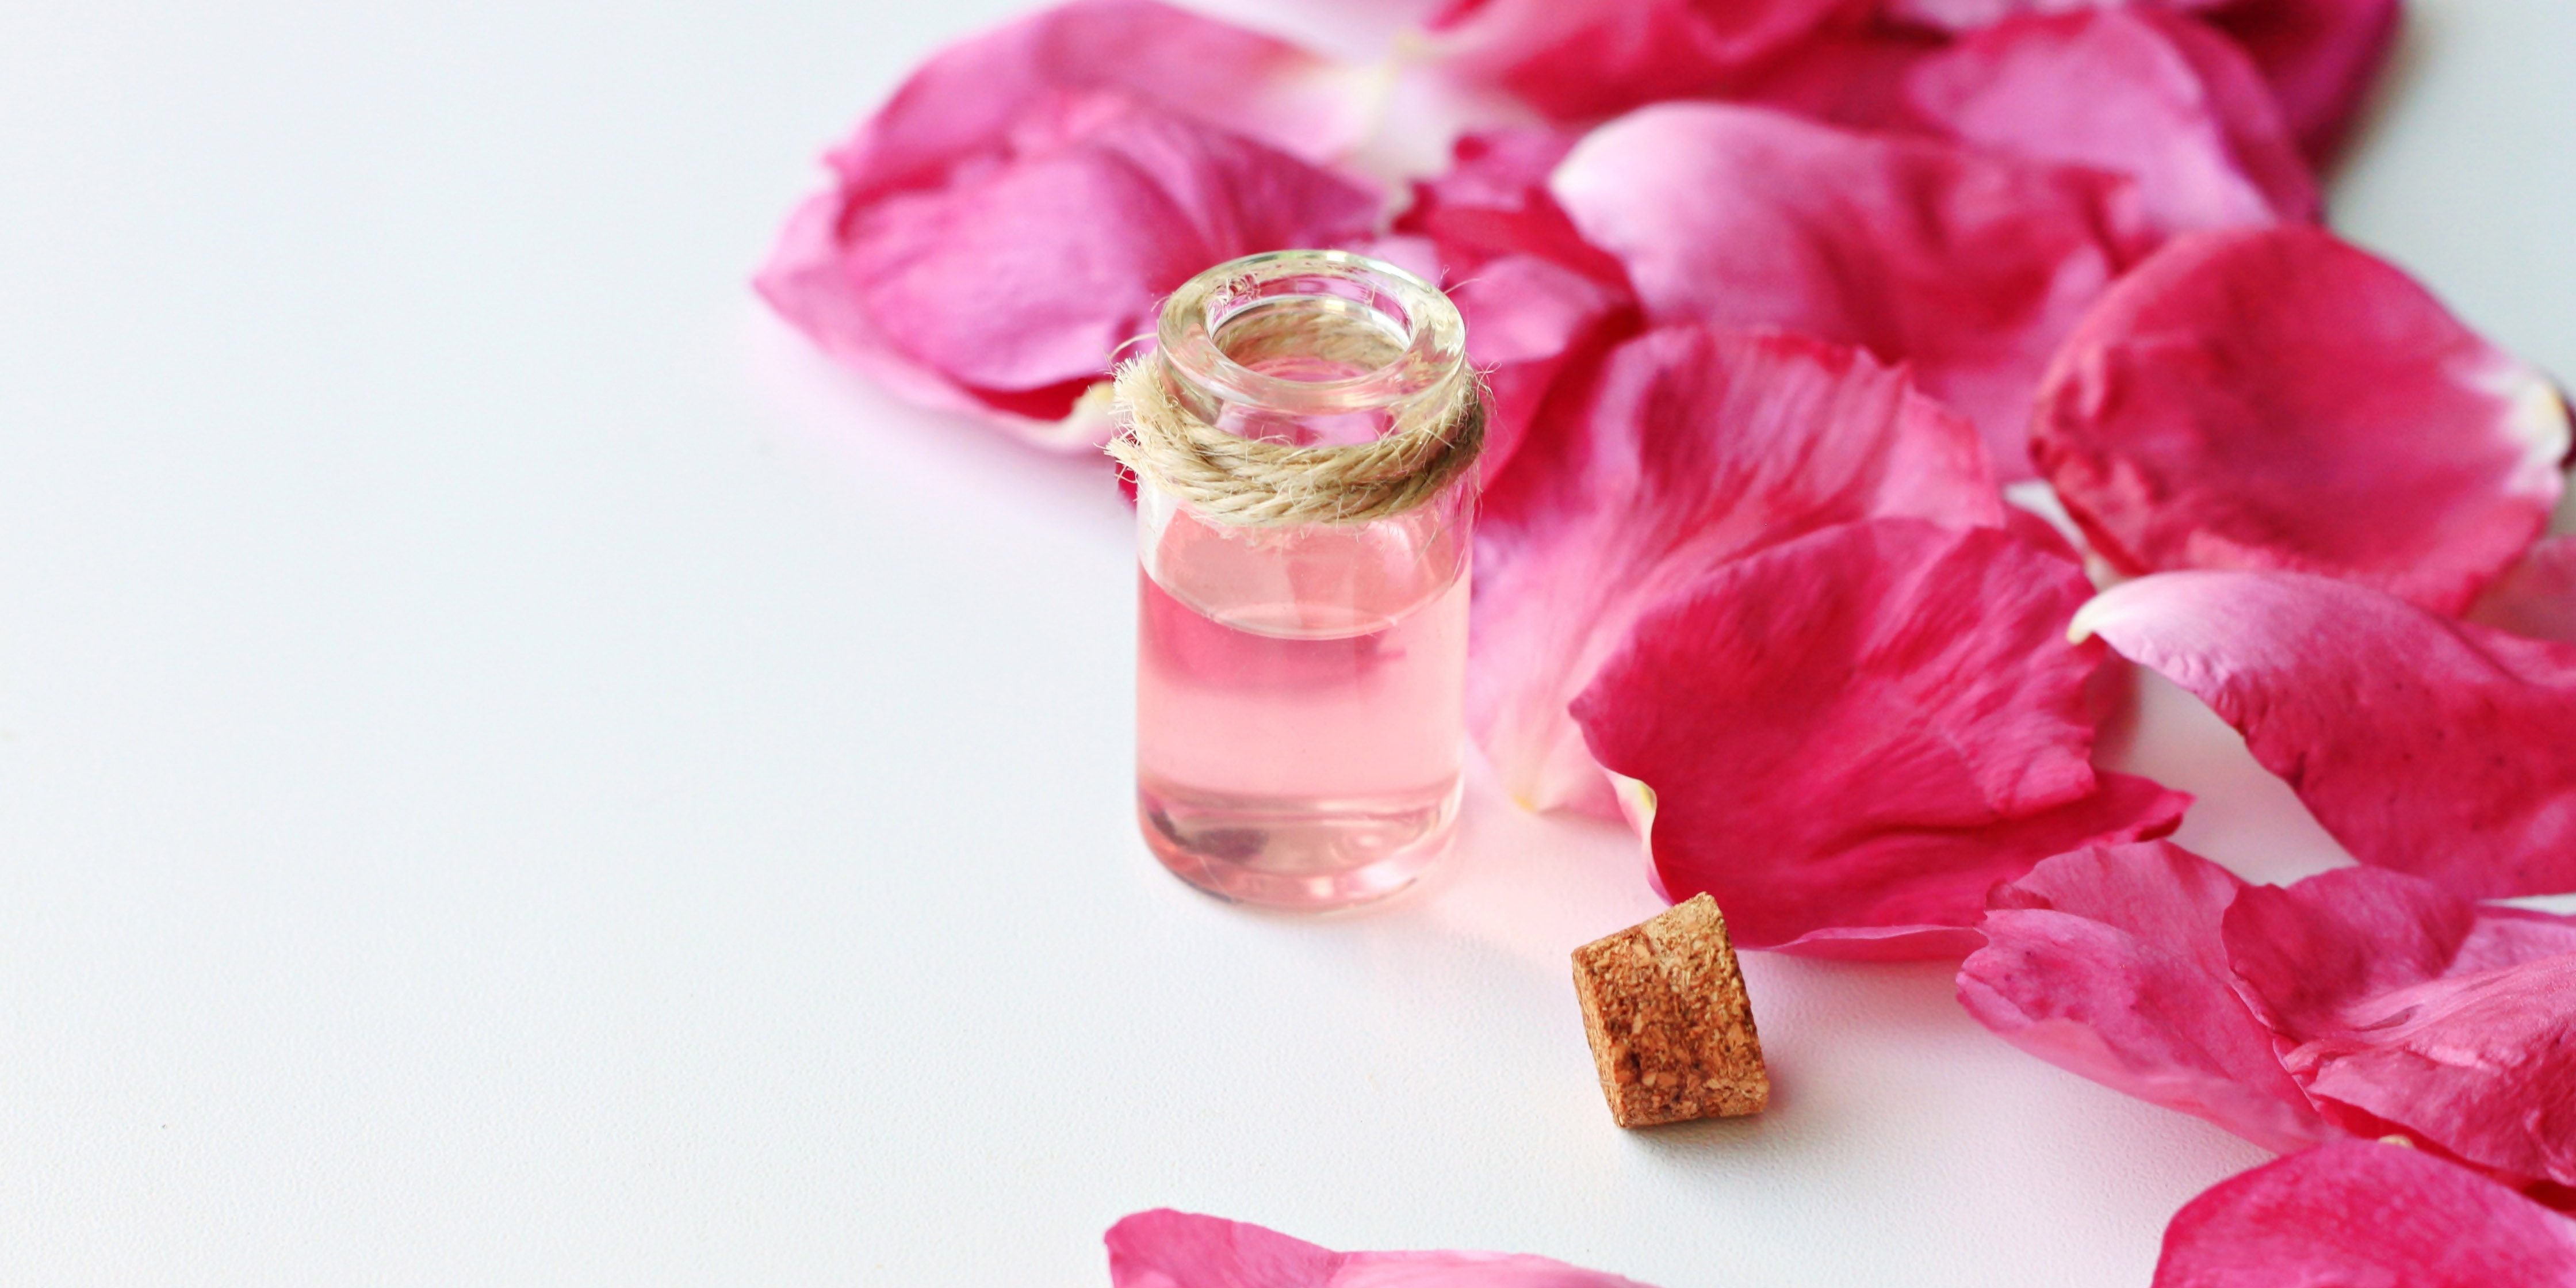 pink aromatic fluid oil rose petals, anti-stress treatment with essential oils